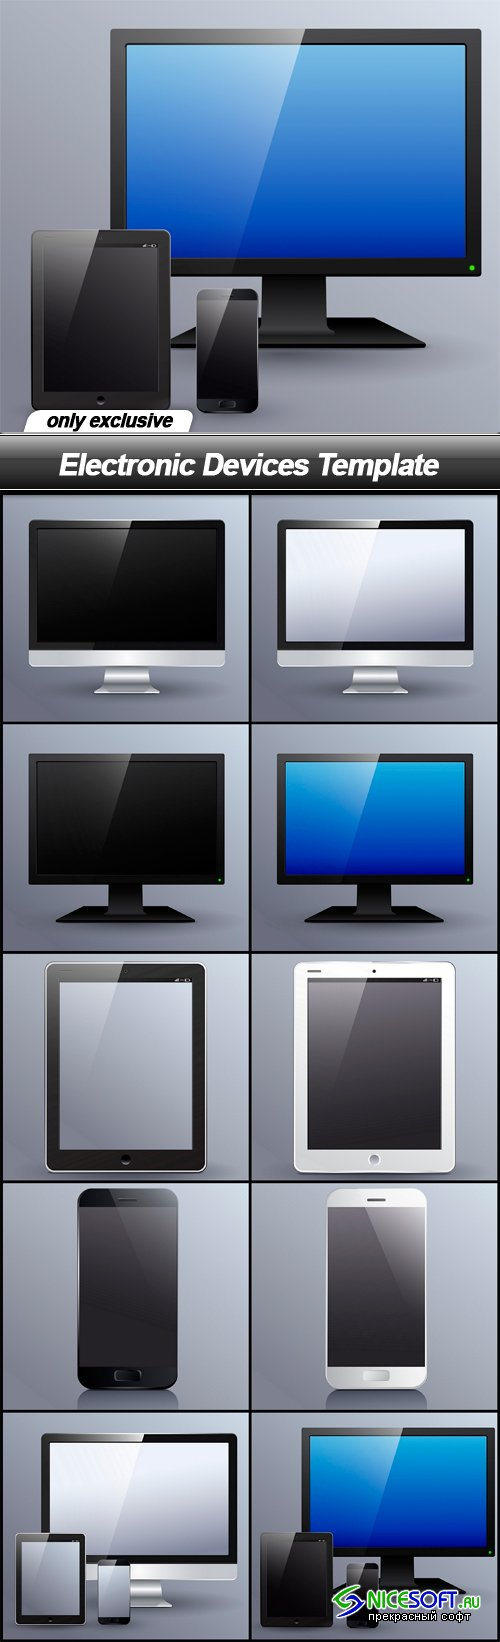 Electronic Devices Template